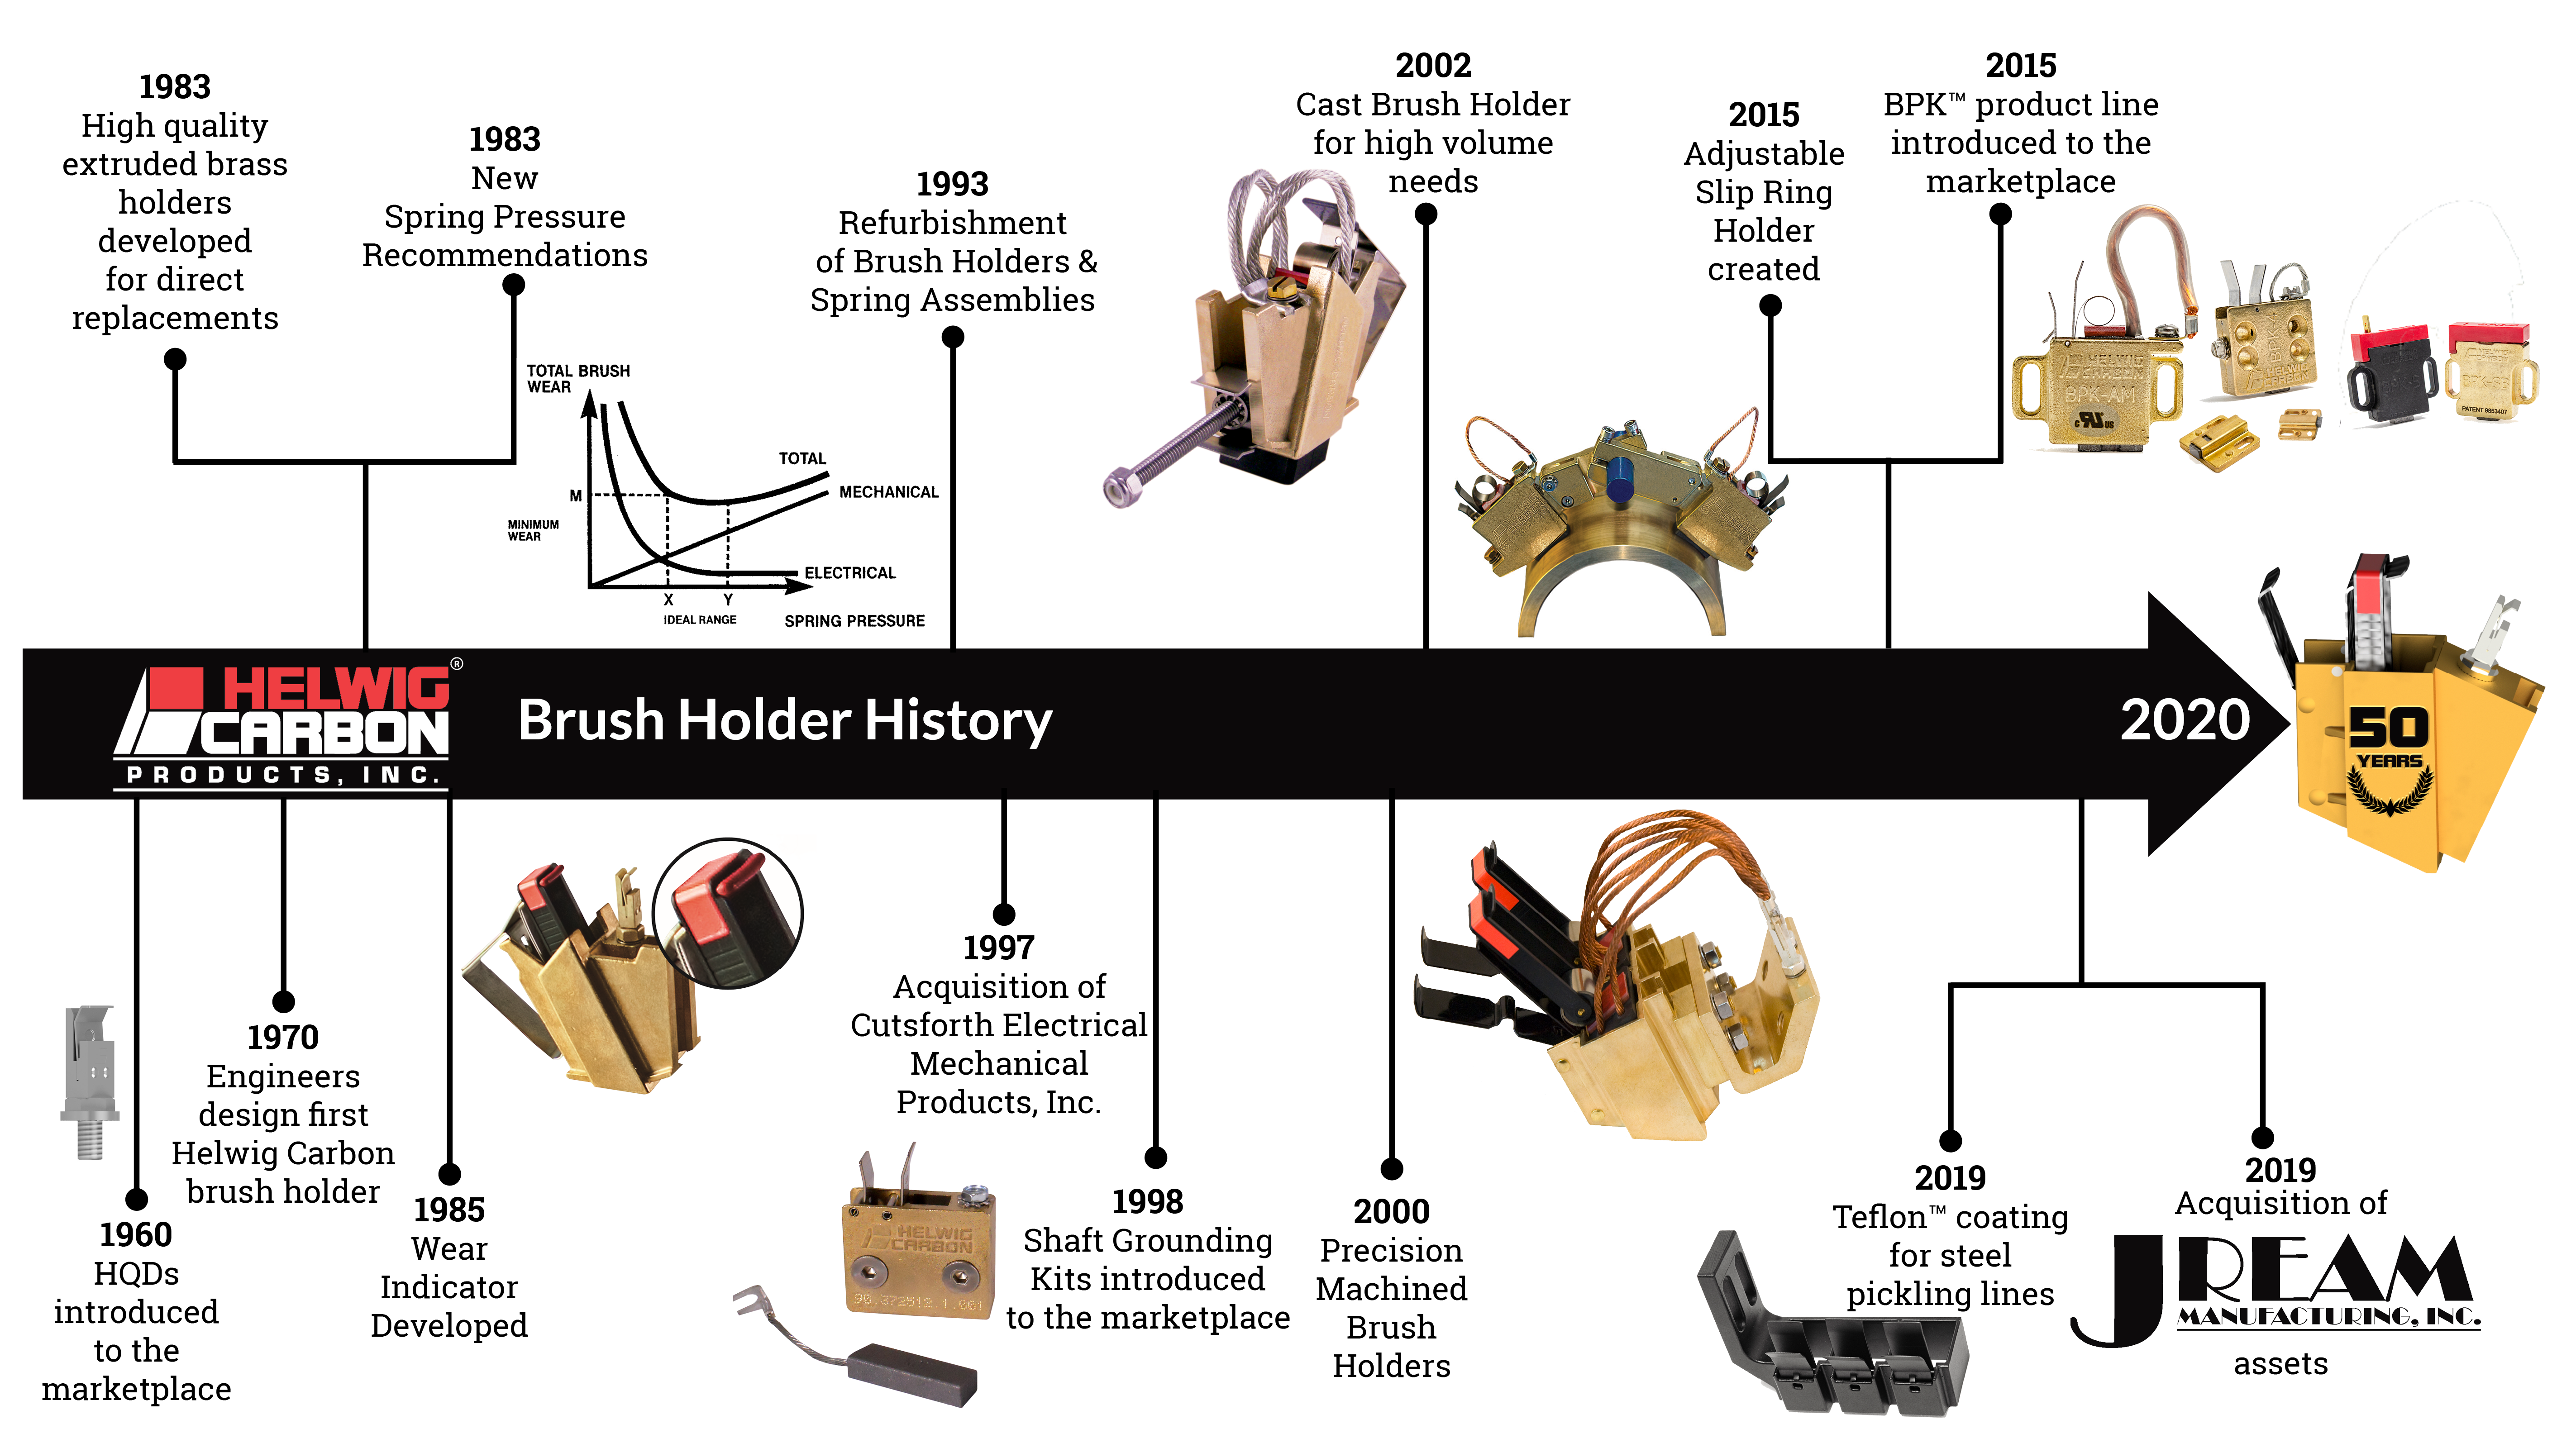 timeline of brush holder innovations, used in Celebrate with us! 50 Years of Brush Holder Innovation blog post